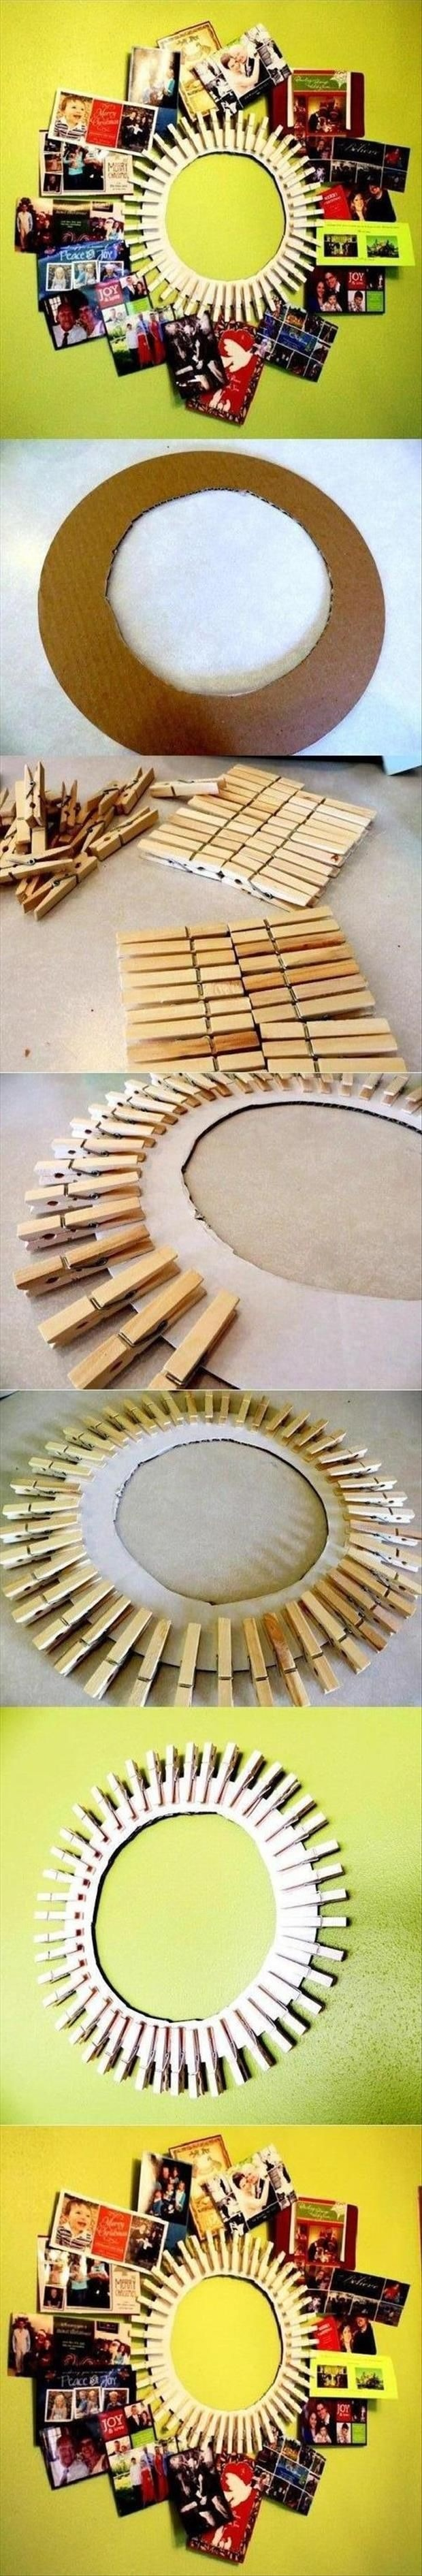 Personally, I wanna try this and just cut a big circle and then find a mirror to put in the middle. Also considered maybe painting the clothespins too just for a added boost of color, I was thinking rainbow would be fun! 😊